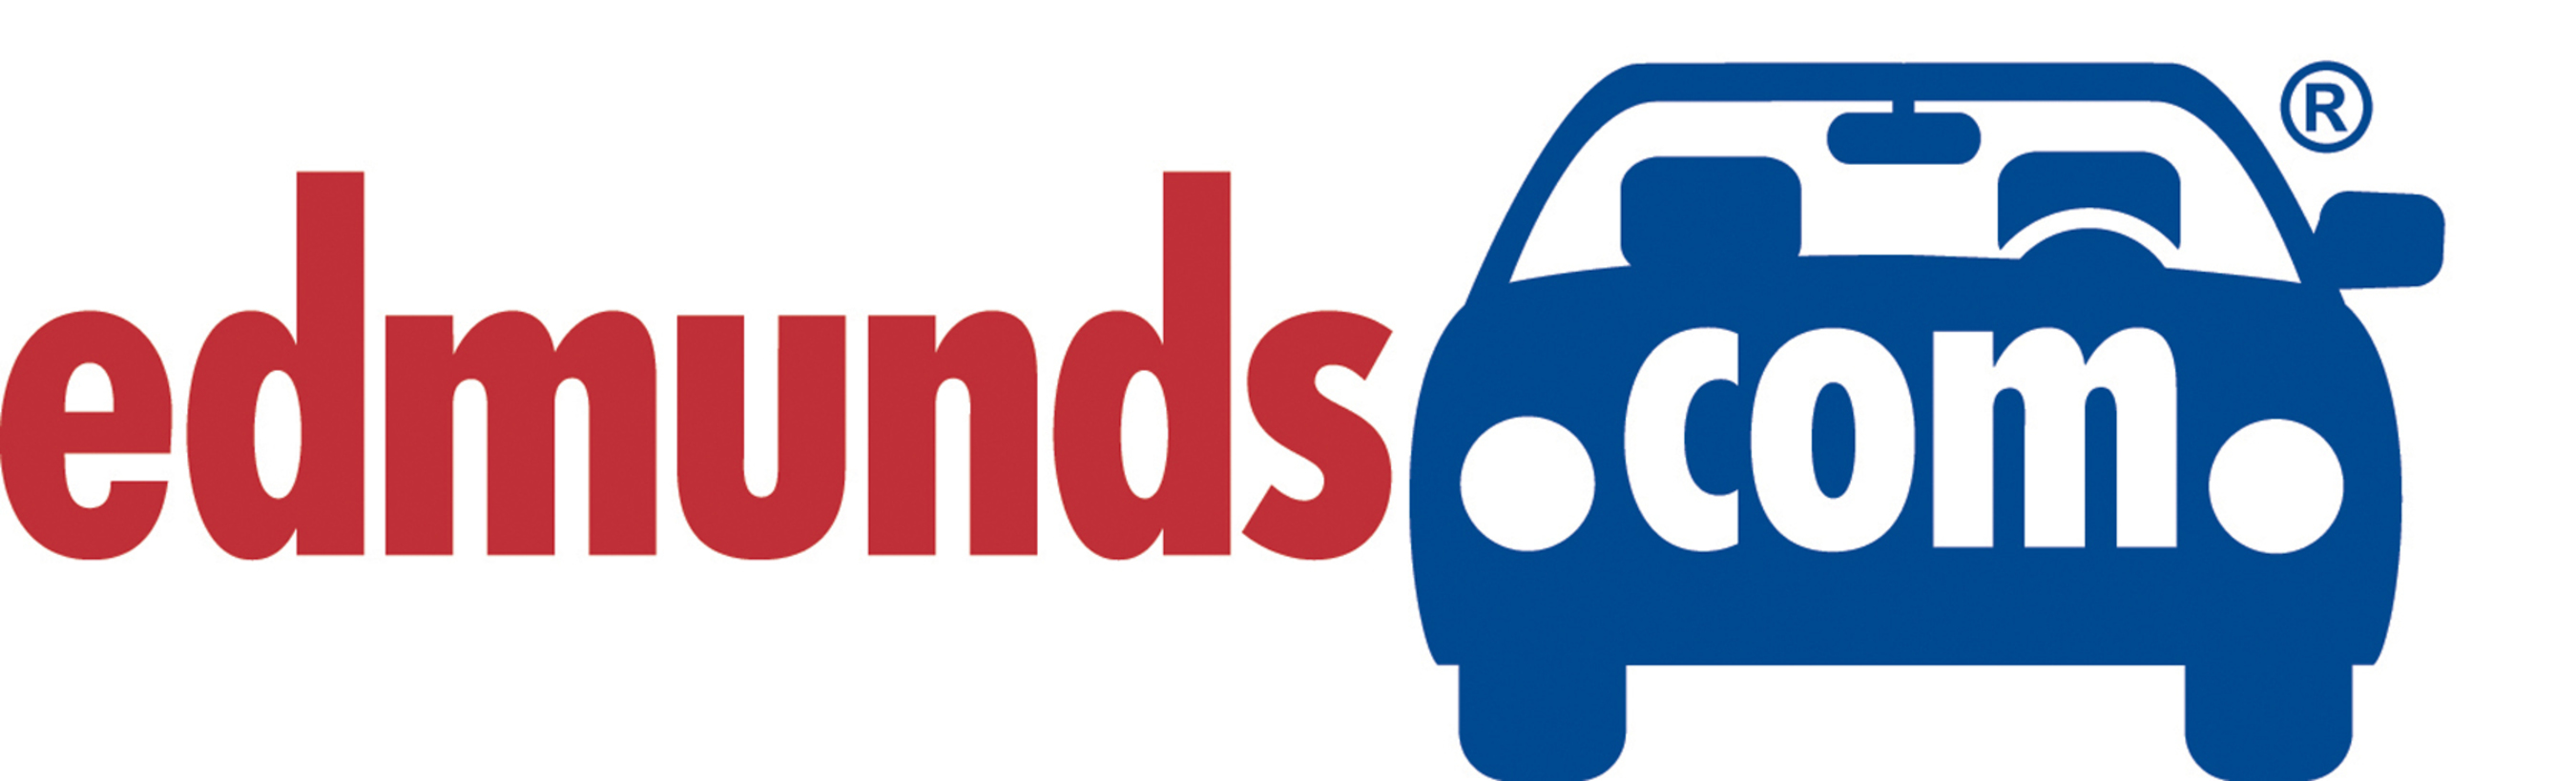 Car-buying platform Edmunds.com serves nearly 20 million visitors each month. With Edmunds.com Price Promise®, shoppers can buy smarter with instant, upfront prices for cars and trucks currently for sale at over 10,000 dealer franchises across the U.S.